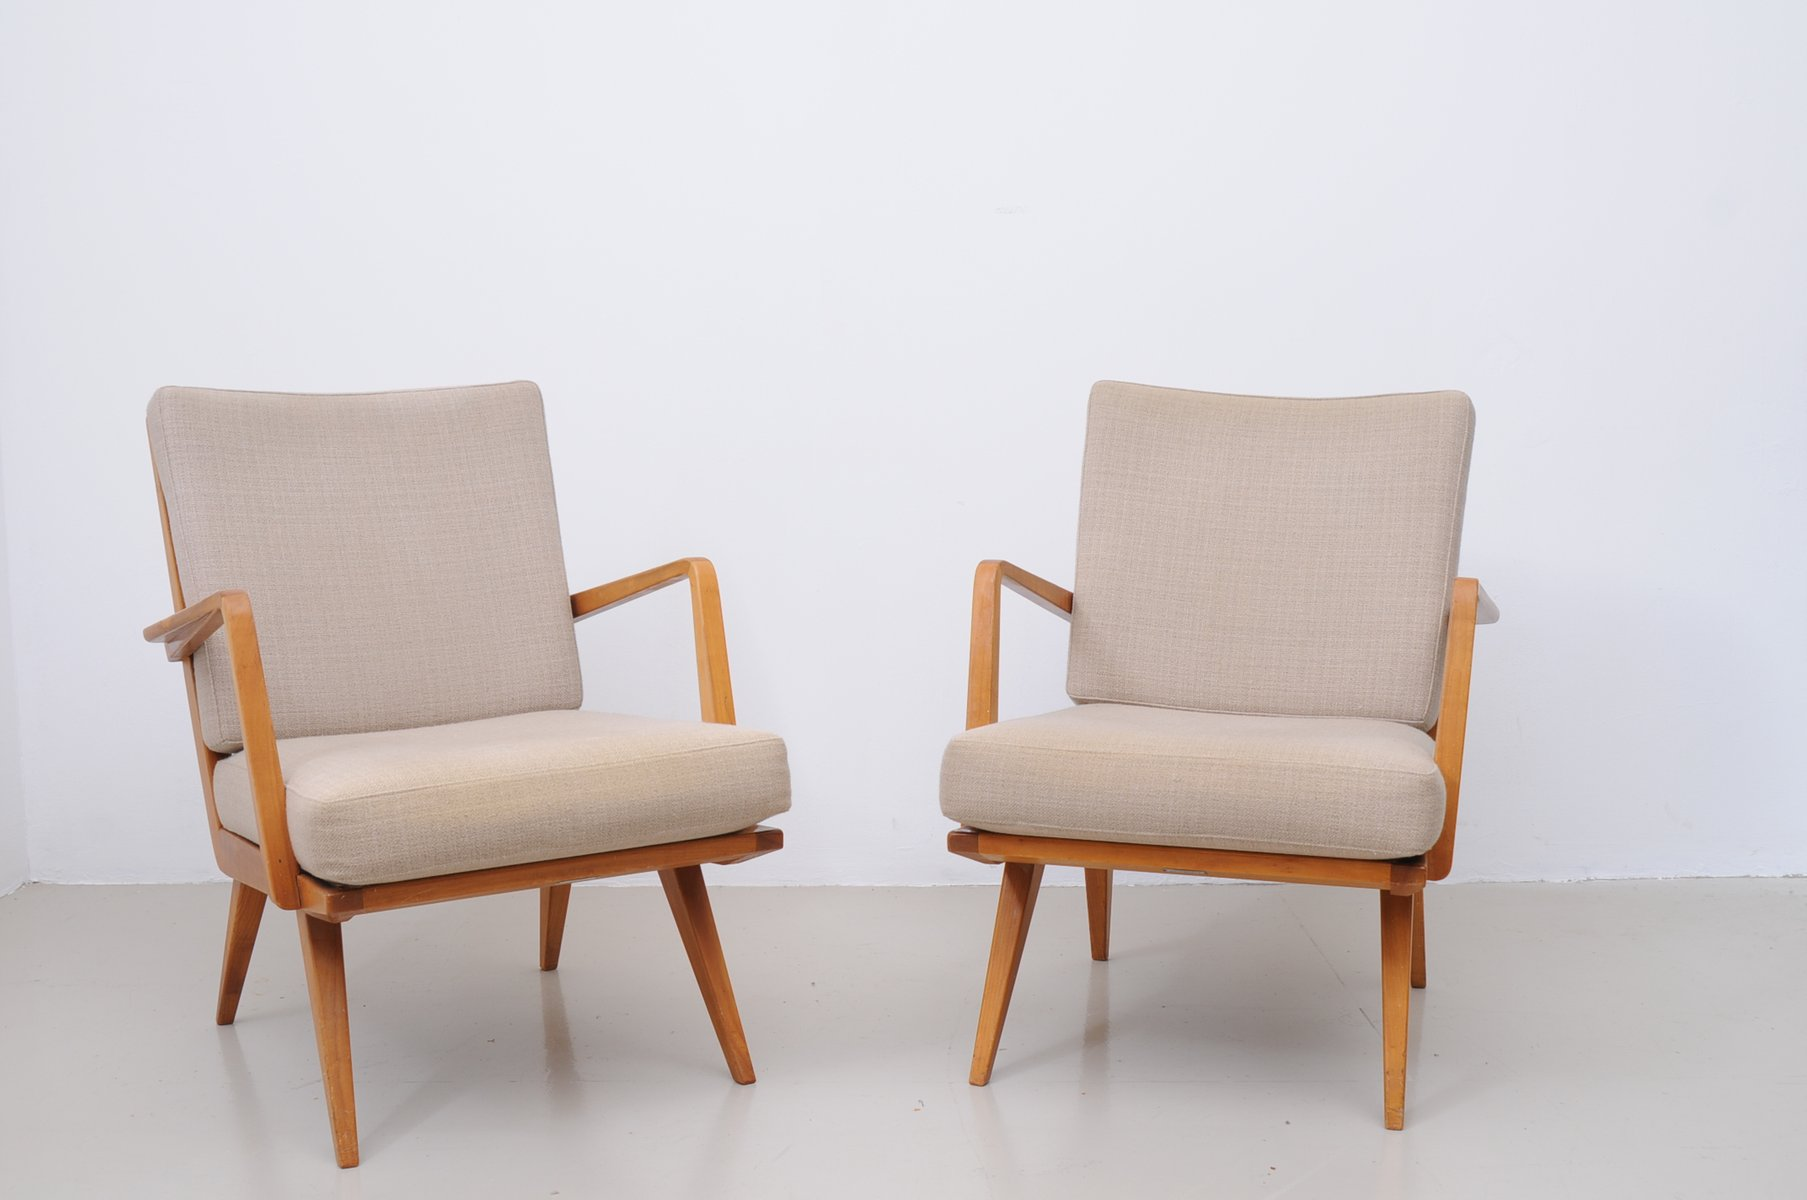 arm chairs fisher price chair mid century armchairs from knoll set of 2 for sale at pamono